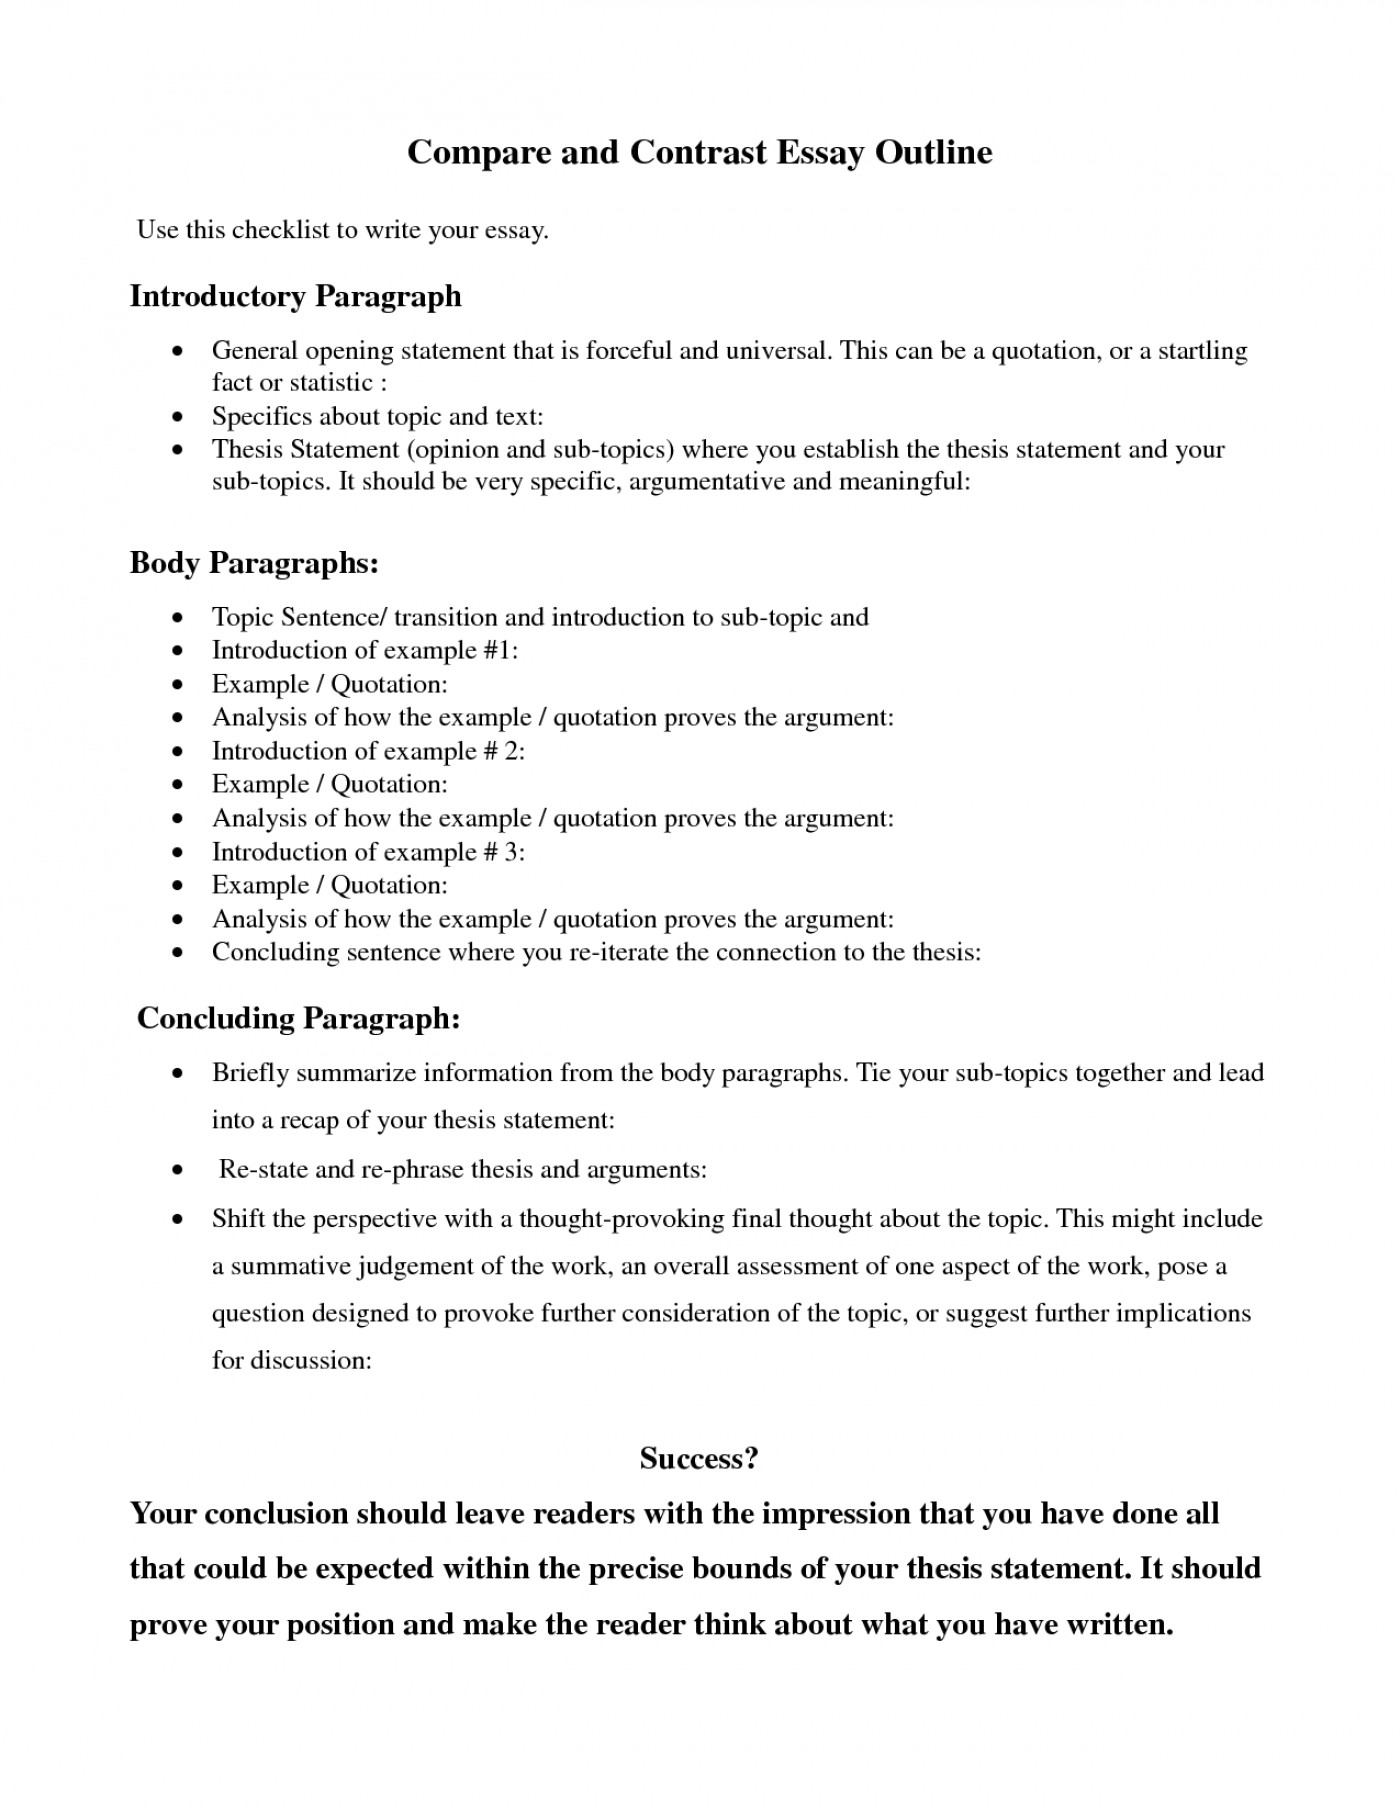 002 Compare And Contrast Essay Template Exceptional High School 5th Grade Example Vs College 1400